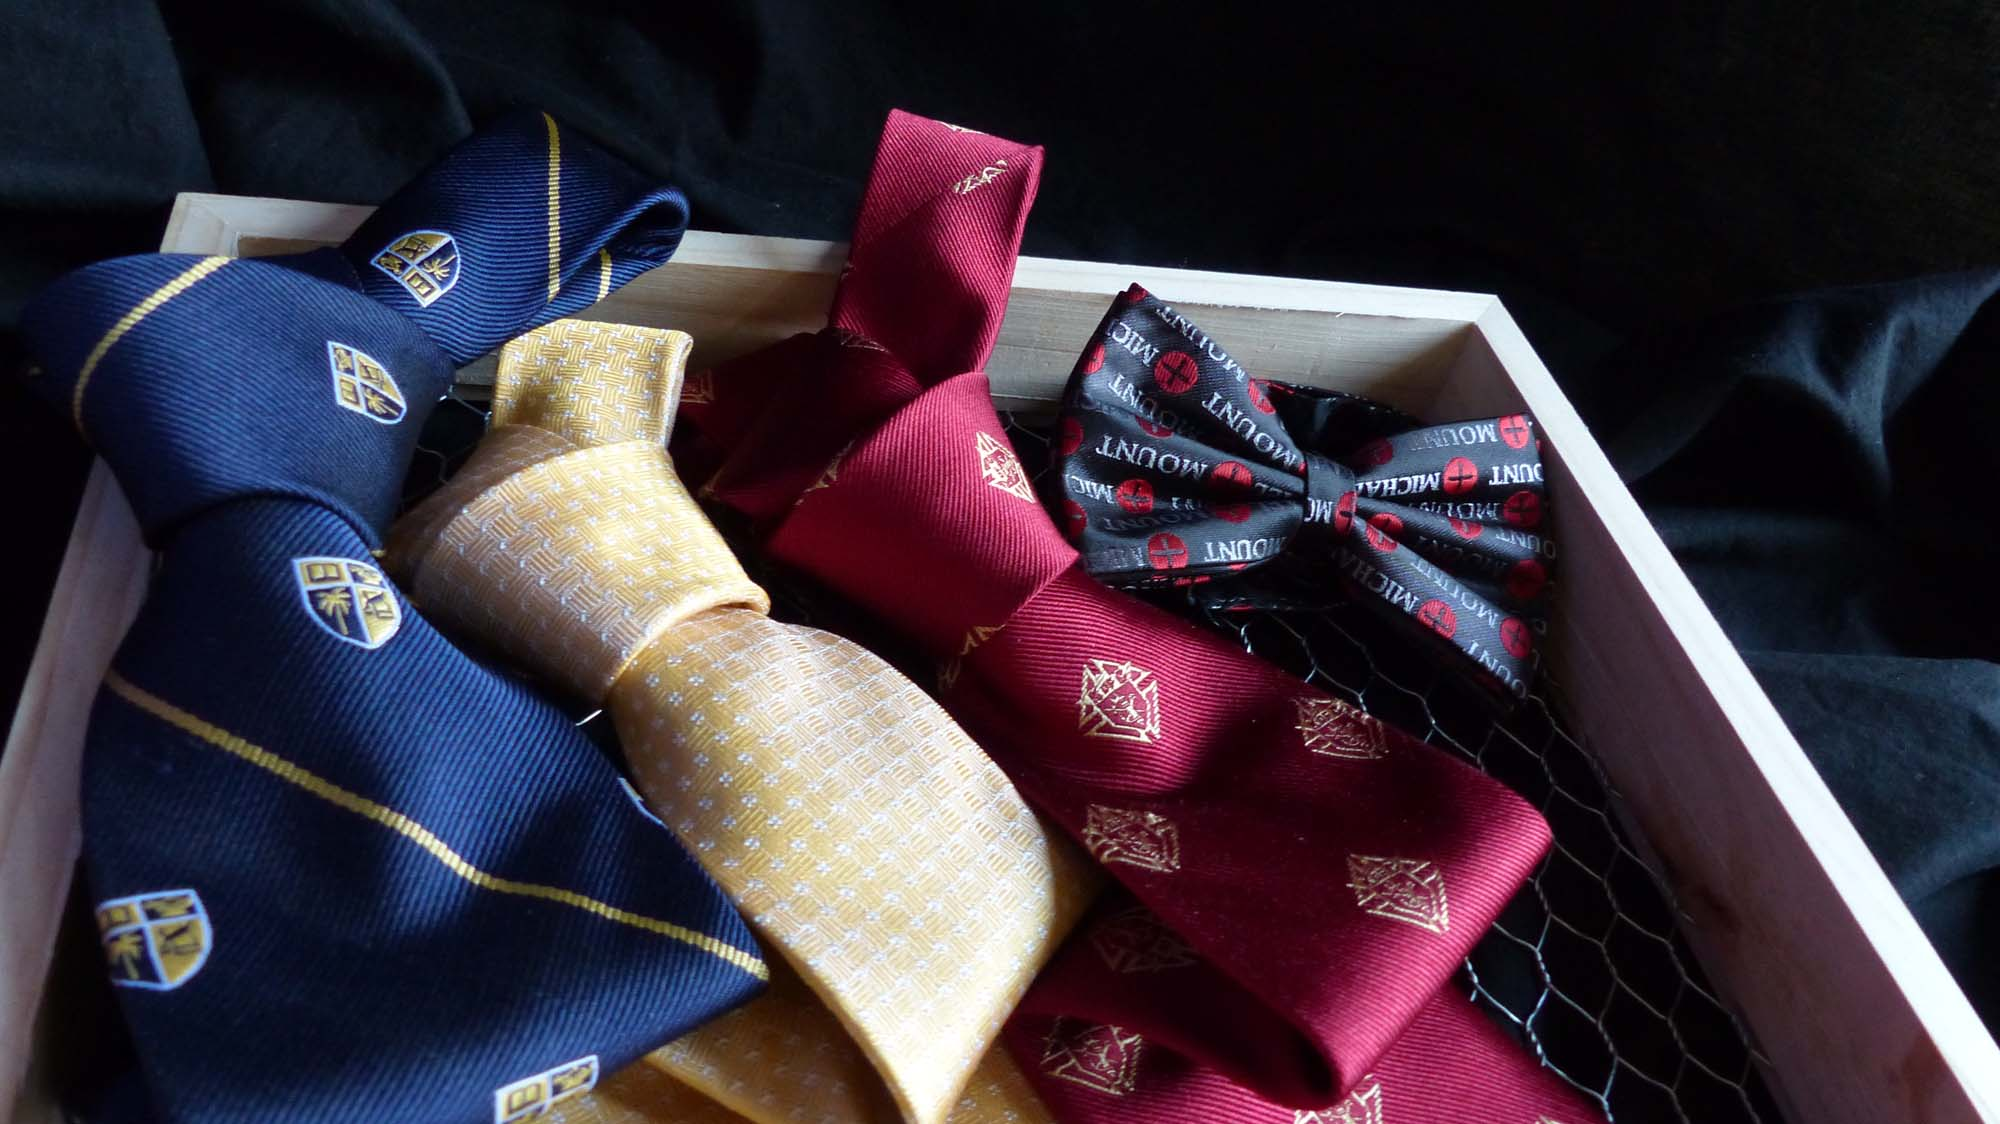 All Custom Ties